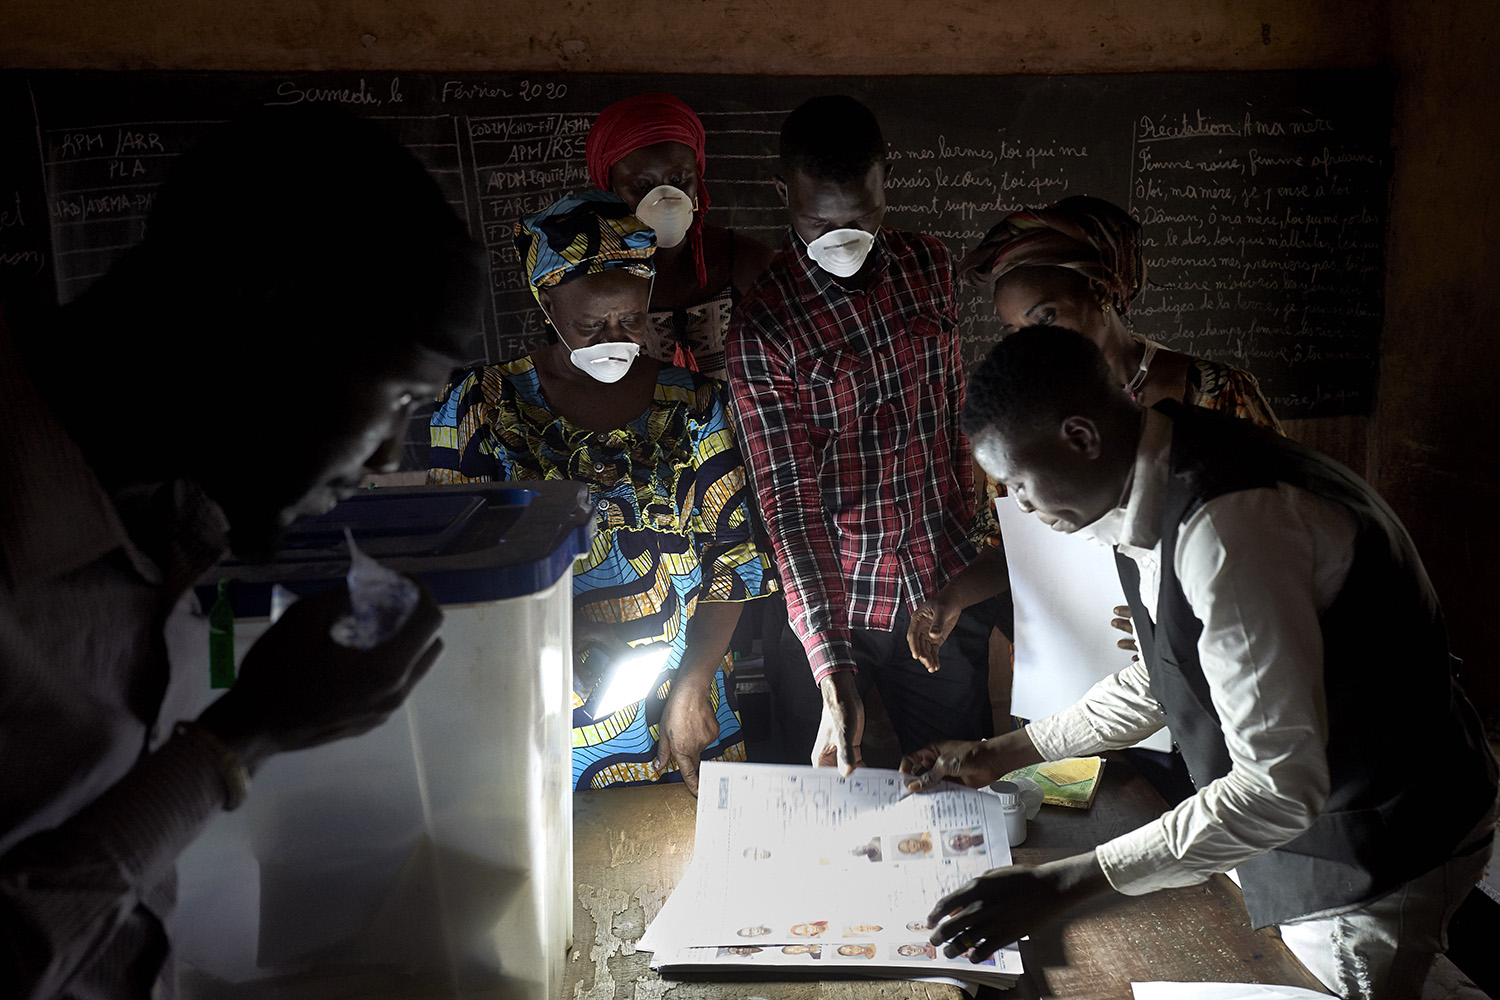 Election officials count votes at a polling station in Bamako, Mali, on March 29. The long-delayed parliamentary election in war-torn Mali was held just hours after the country recorded its first COVID-19 death. MICHELE CATTANI/AFP via Getty Images